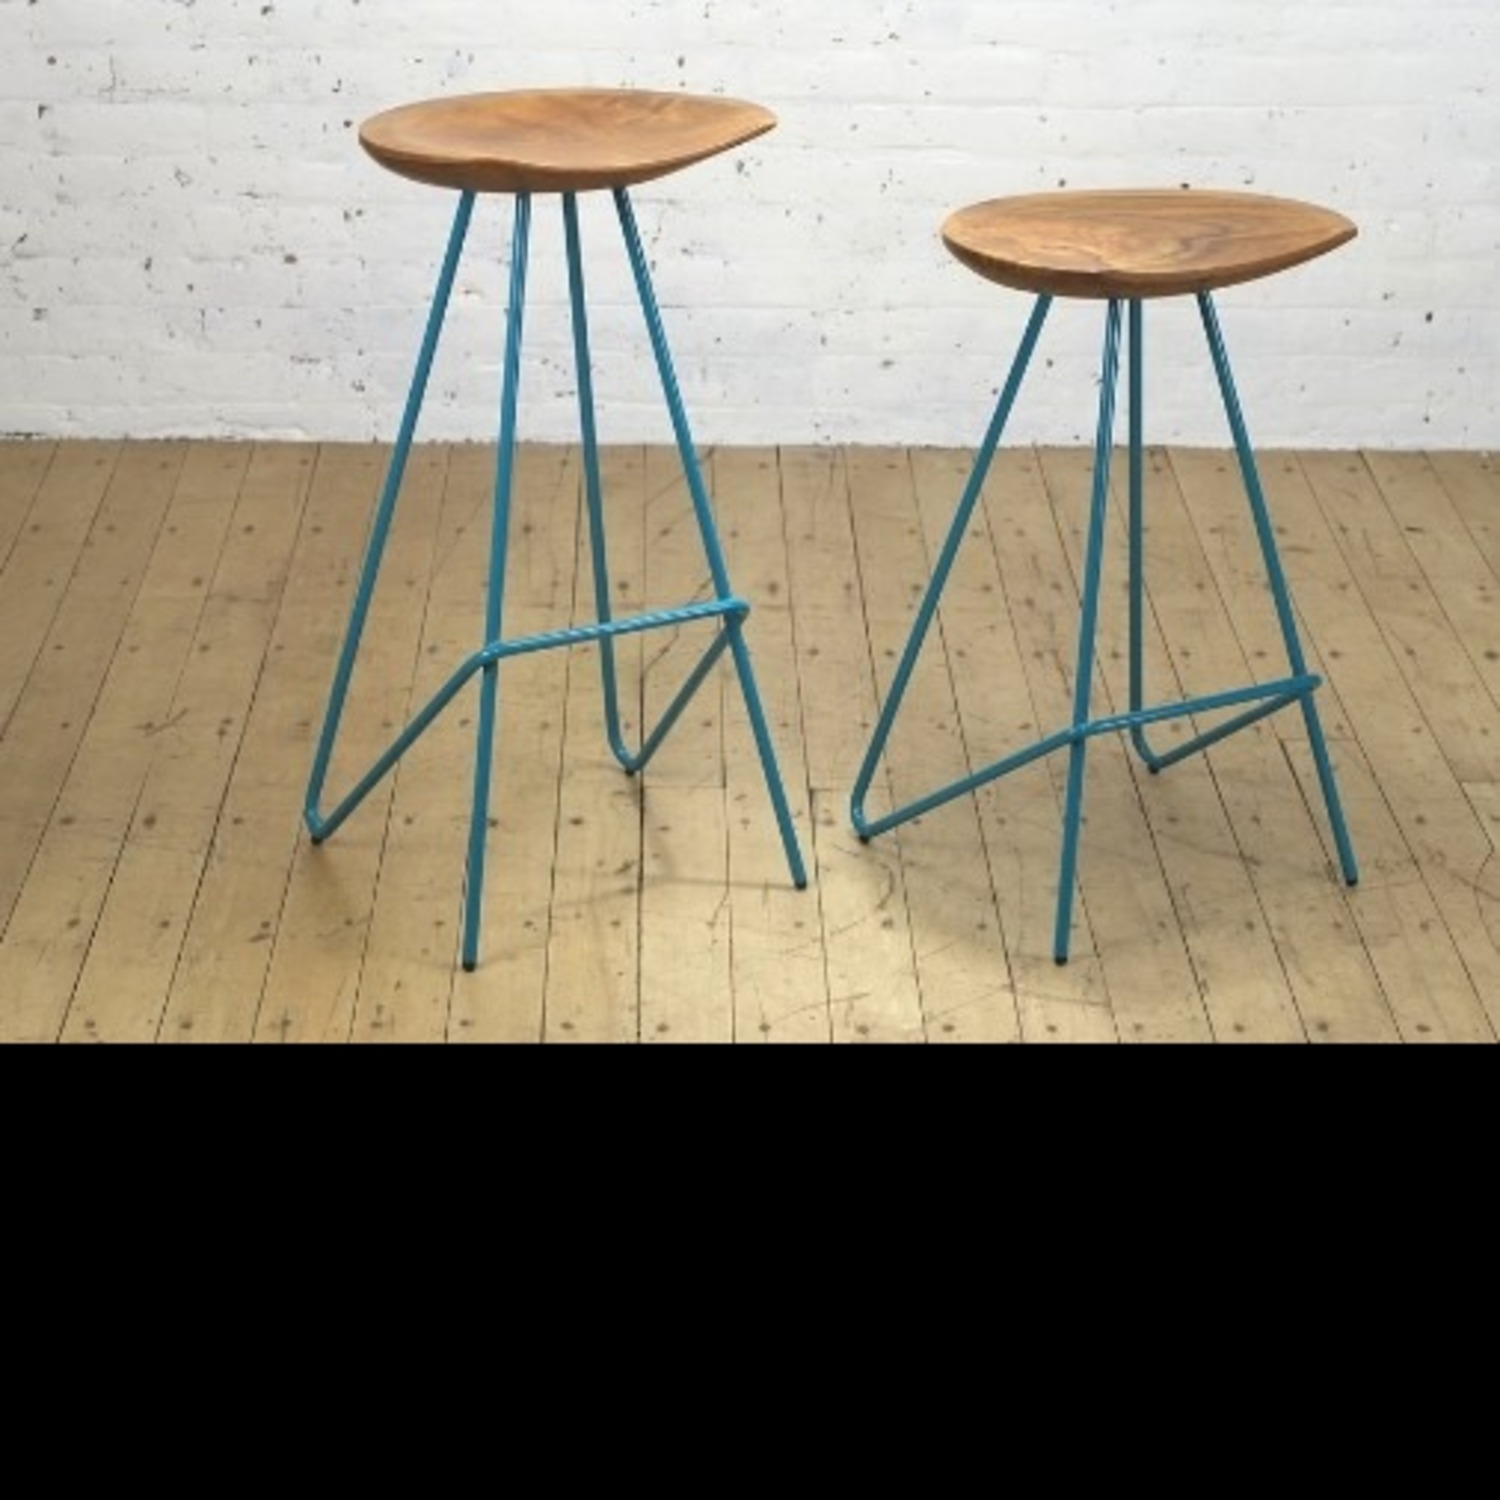 From The Source Perch Counter Stools - Set of 2 - image-12